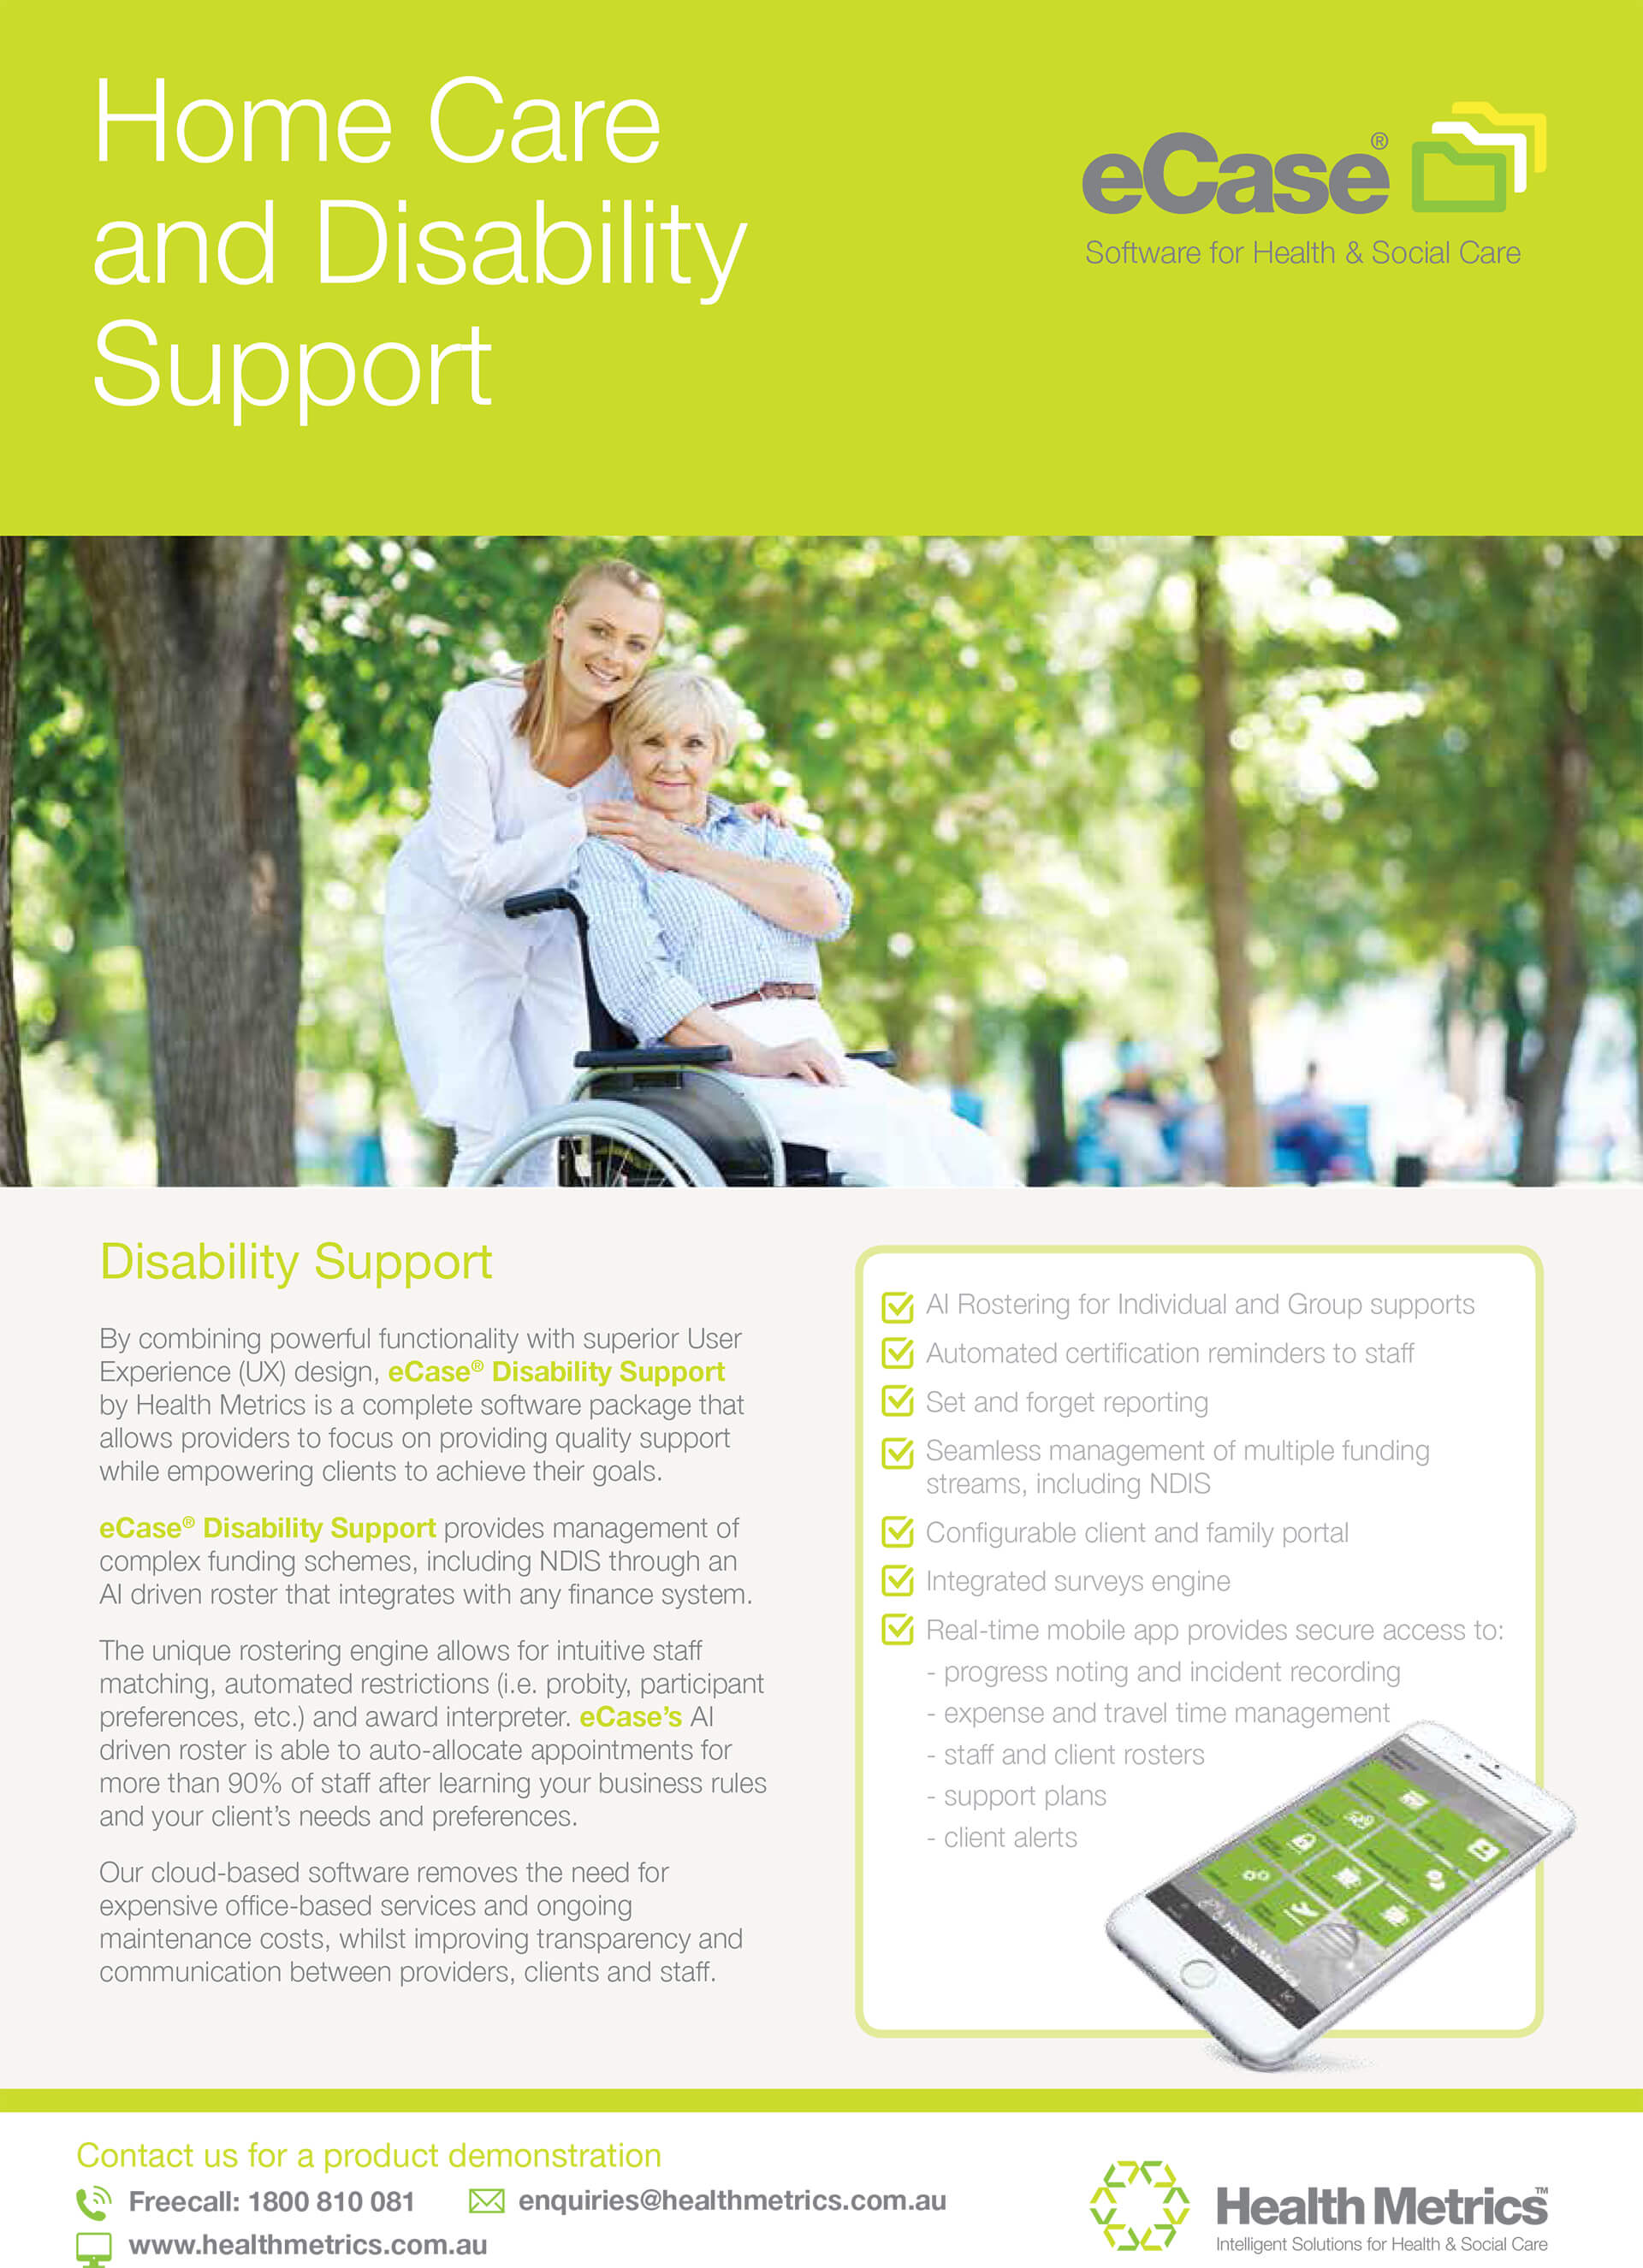 eCase Homecare and Disability flyer_AUS_webV2